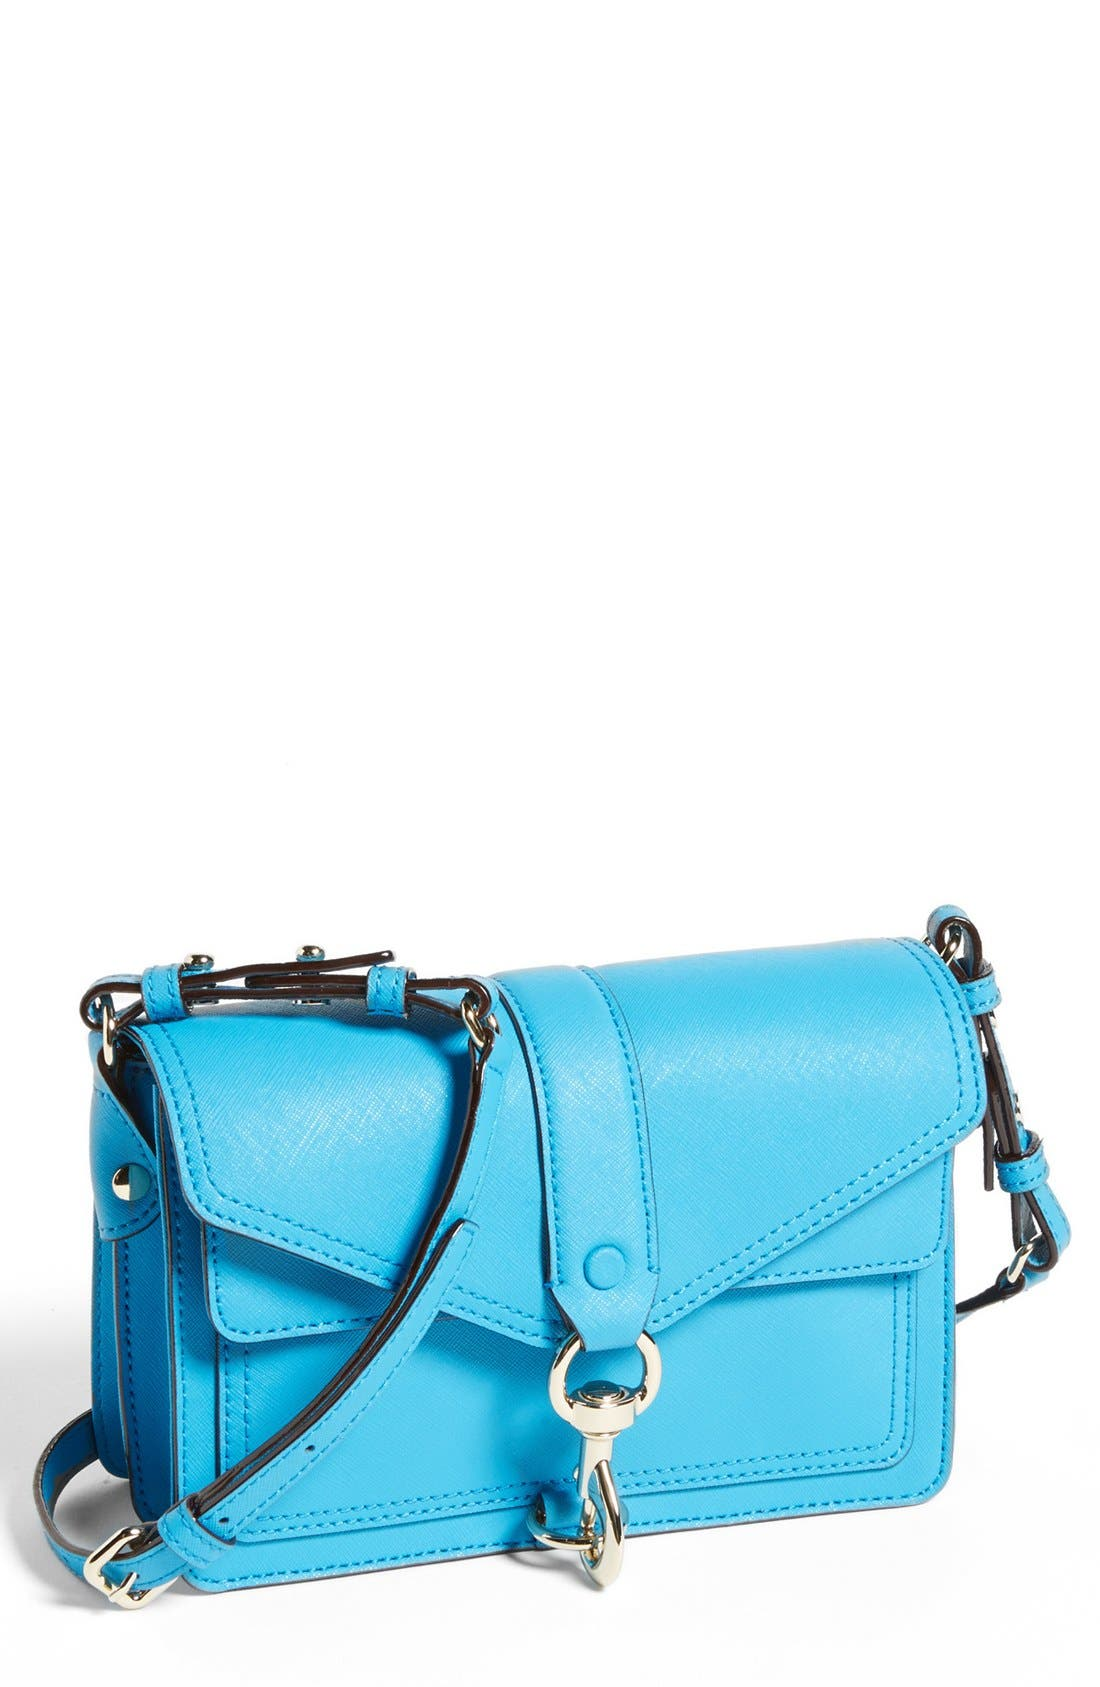 Main Image - Rebecca Minkoff 'Hudson Mini Moto' Crossbody Bag